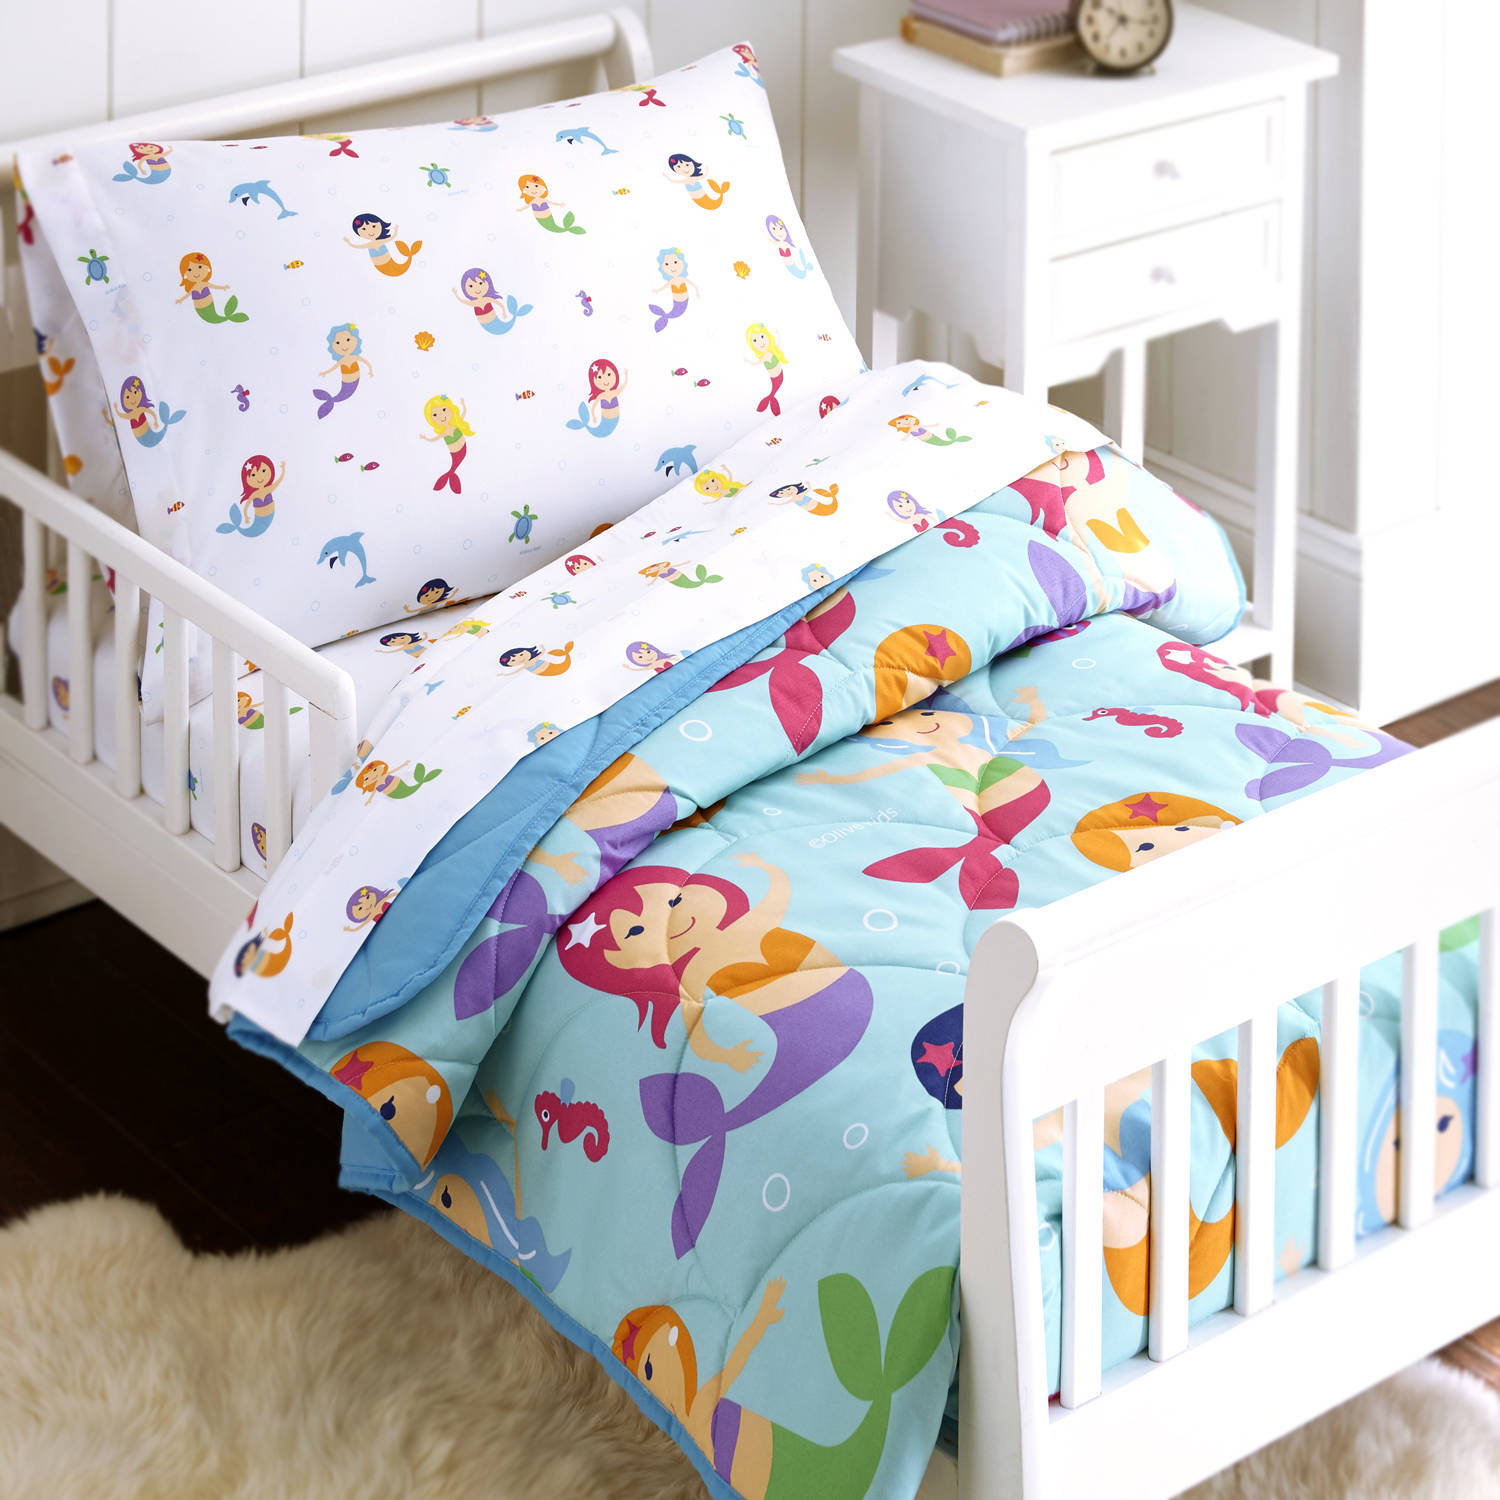 Olive Kids Mermaids 4-Piece Bed in a Bag Toddler Bedding Set